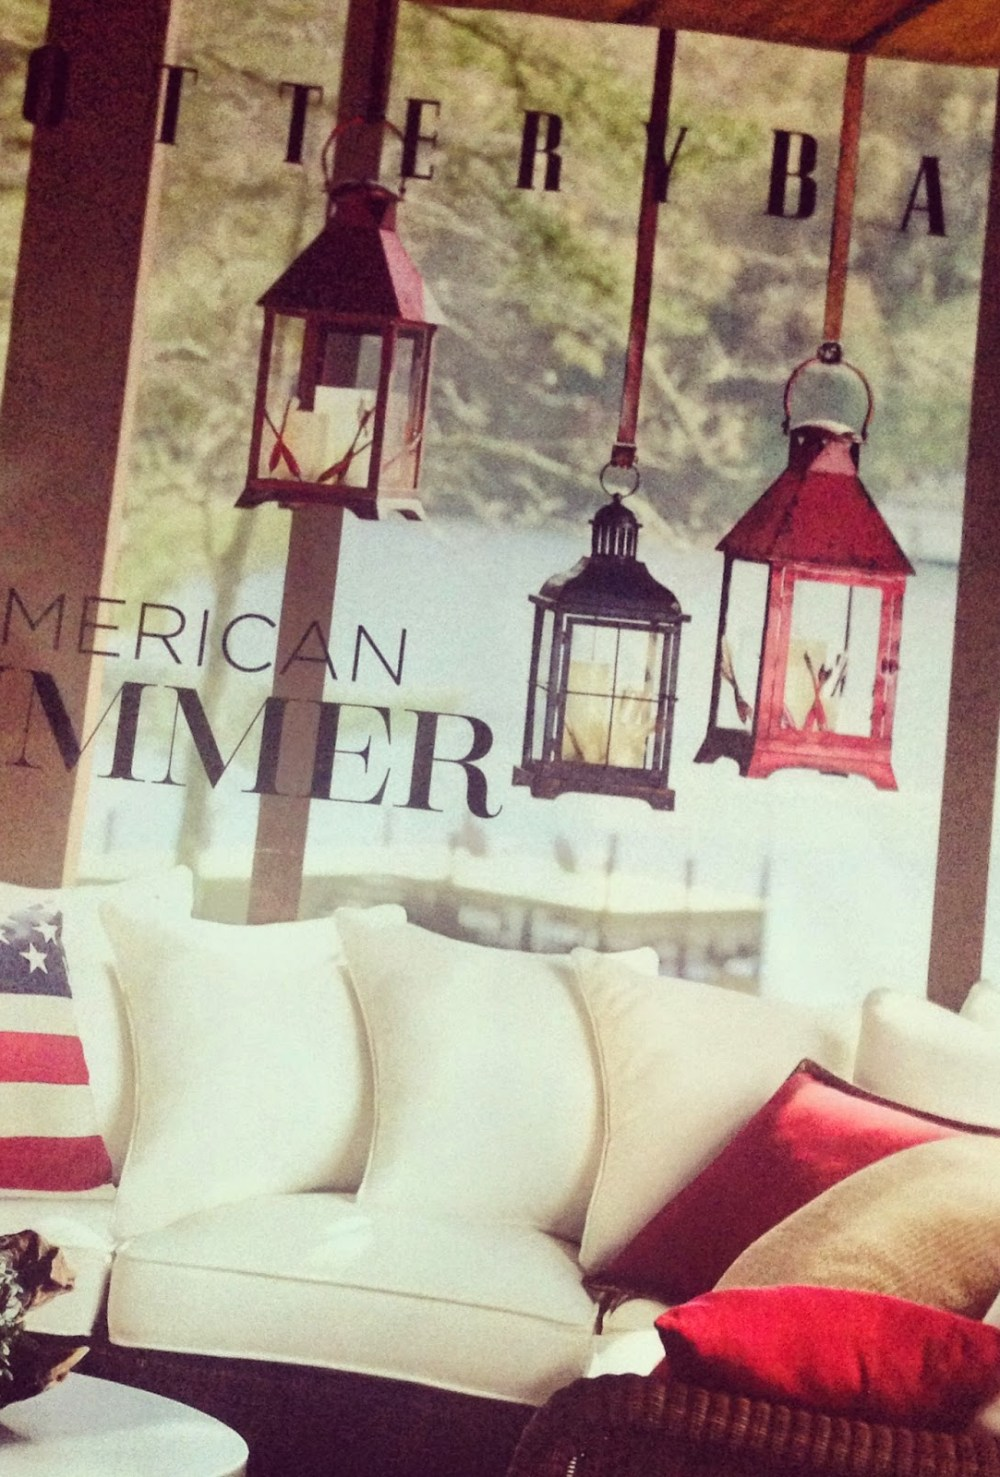 How To Have An American Summer- According To Pottery Barn